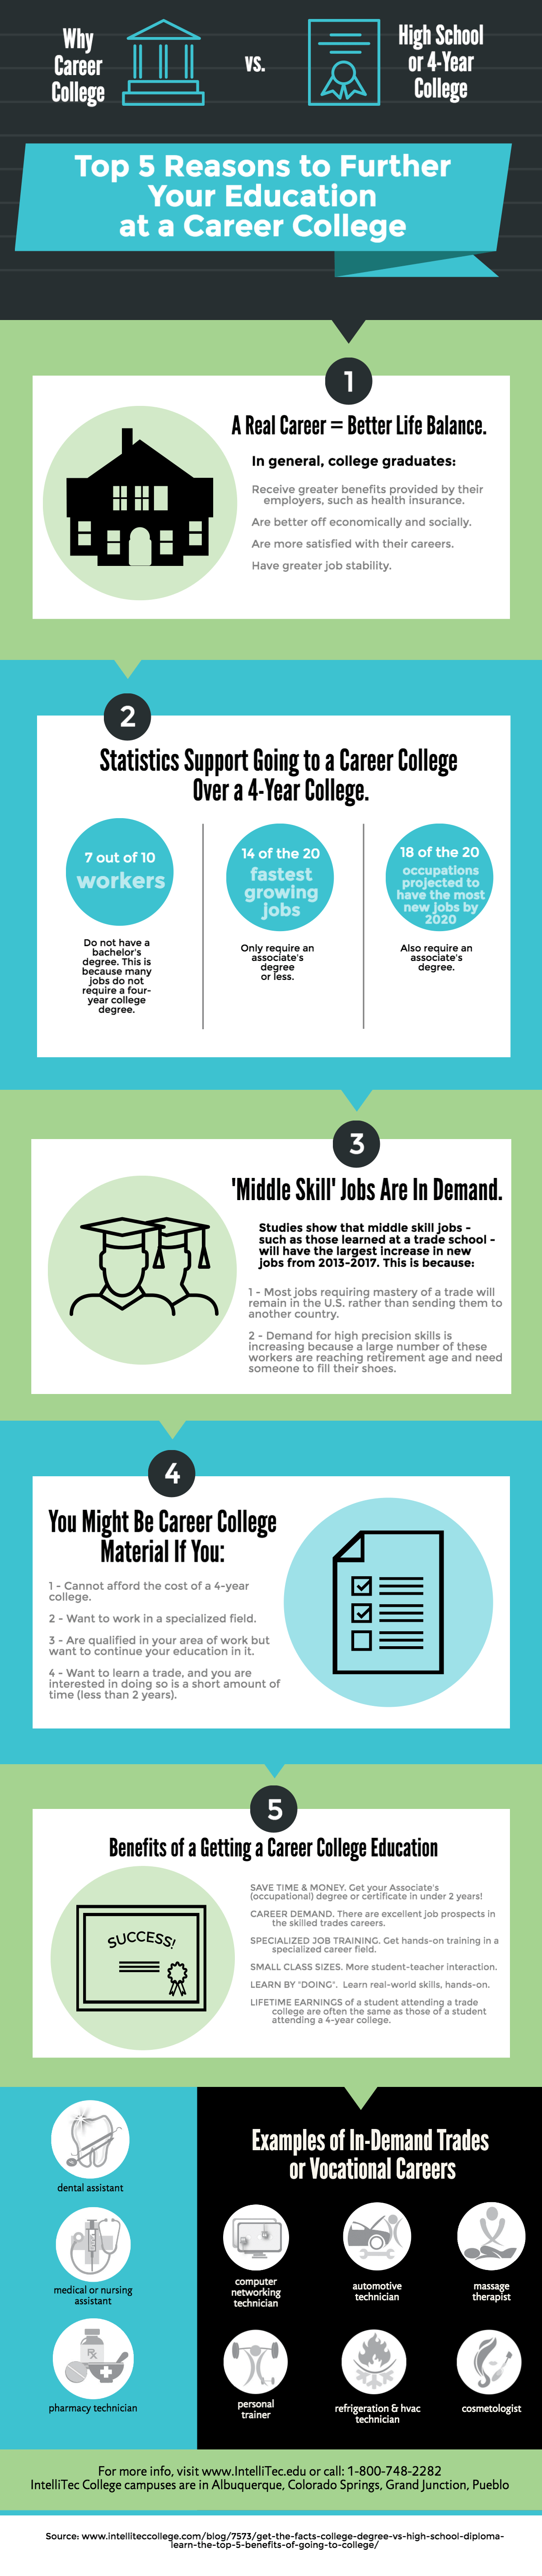 Top 5 Reasons to Further Your Education at a Career College